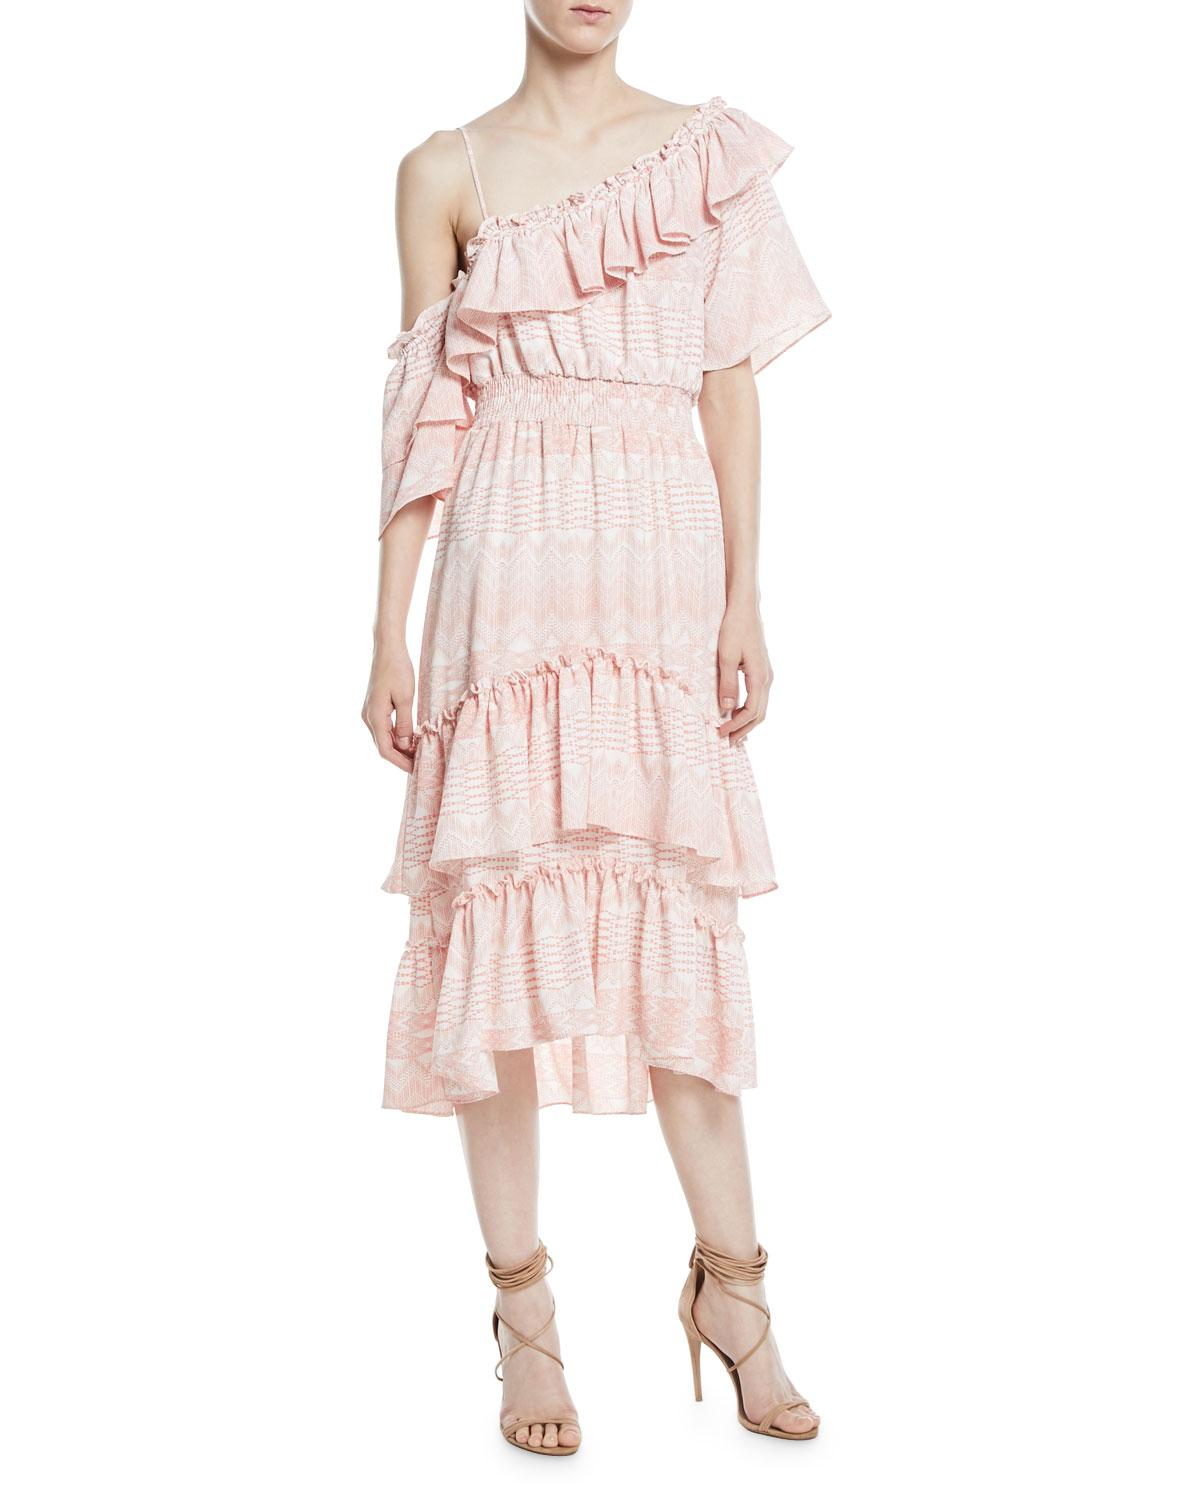 875951c8314d MISA Agata One-shoulder A-line Tiered Ruffles Chiffon Dress in Pink ...